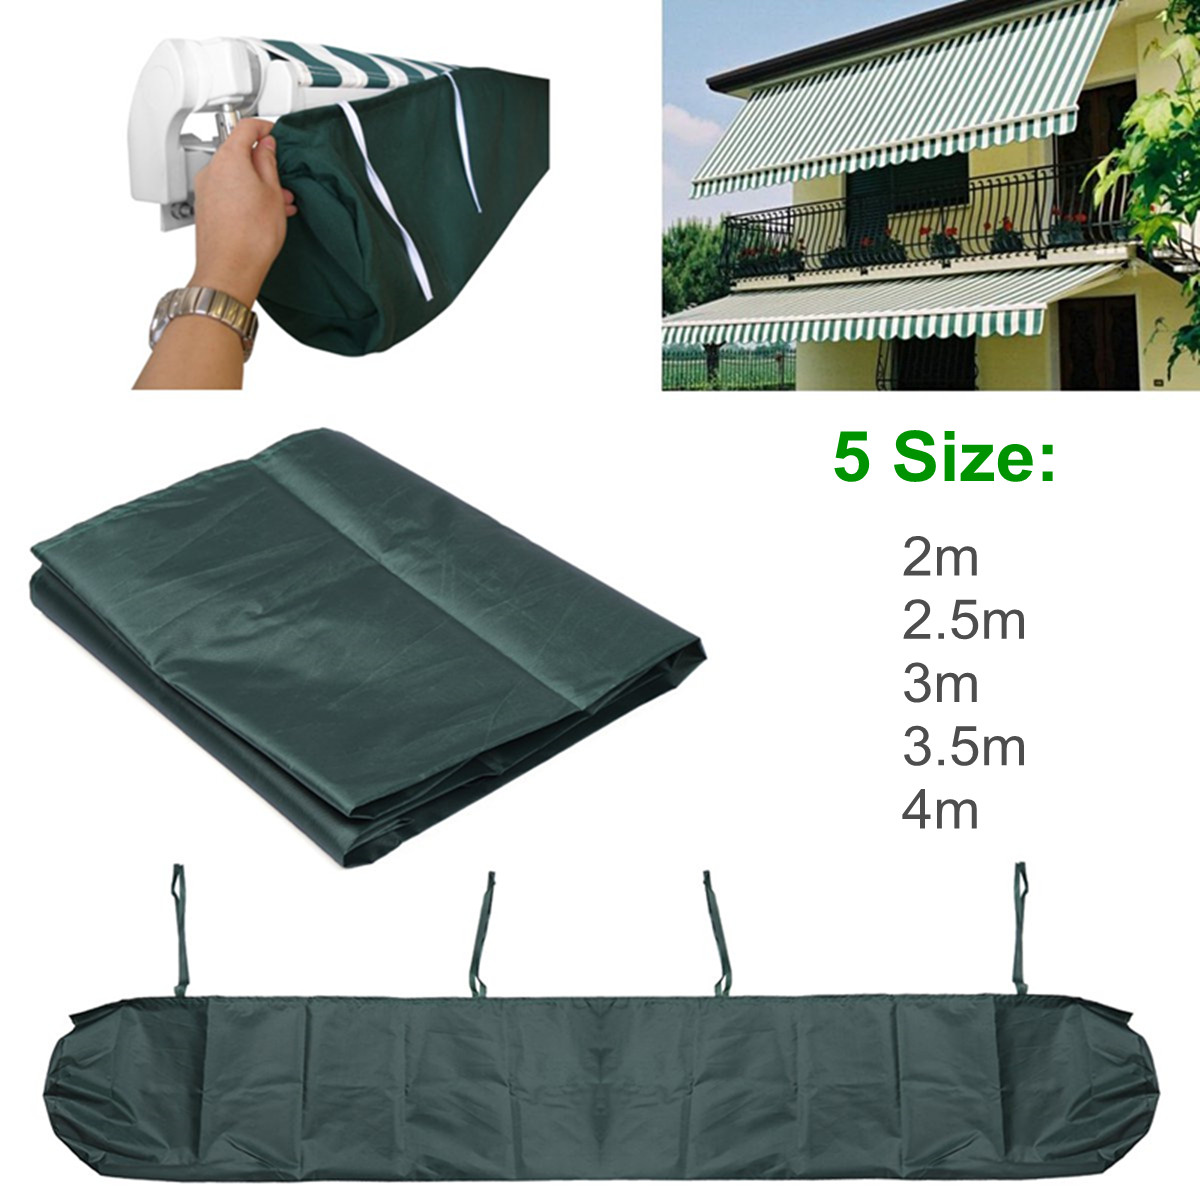 5 Size Patio Awning Winter Storage Bag Rain Weather Cover